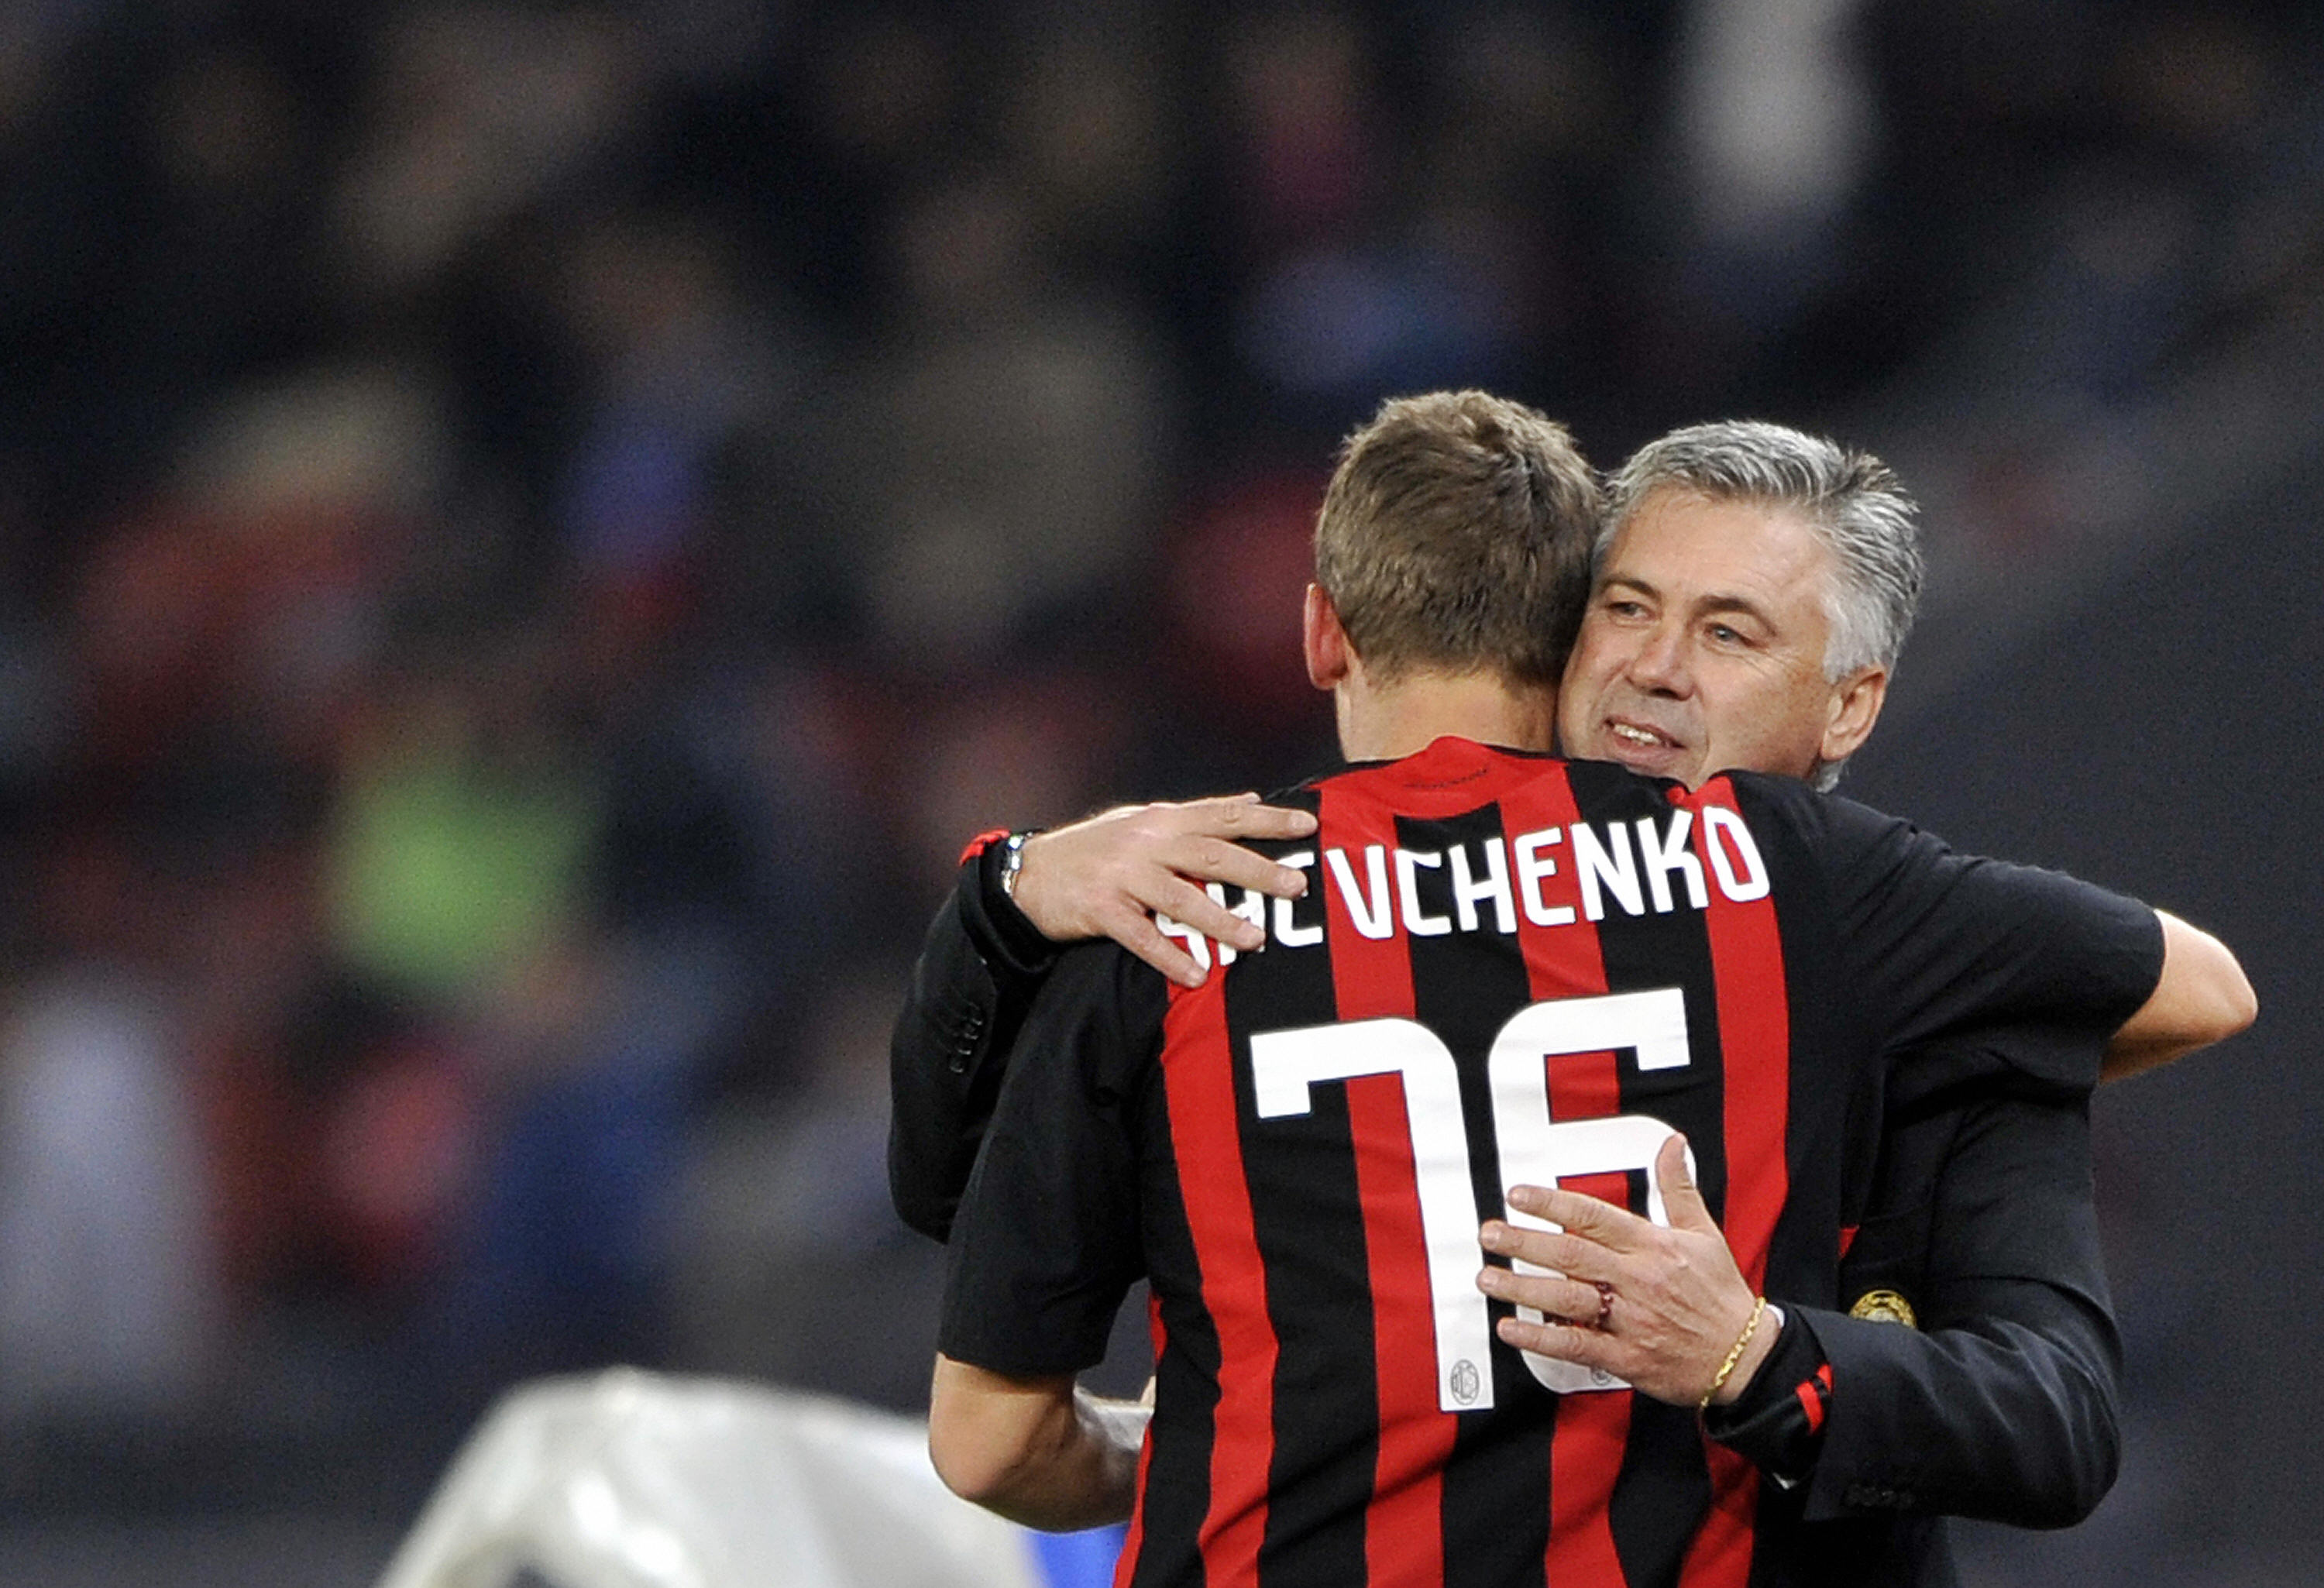 AC Milan's Andrei Shevchenko is congratulates by team coach Carlo Ancelotti after he scored the first goal during their UEFA Cup first round, second leg football game against FC Zurich on October 2, 2008 in Zurich. AFP PHOTO / FABRICE COFFRINI (Photo credit should read FABRICE COFFRINI/AFP/Getty Images)